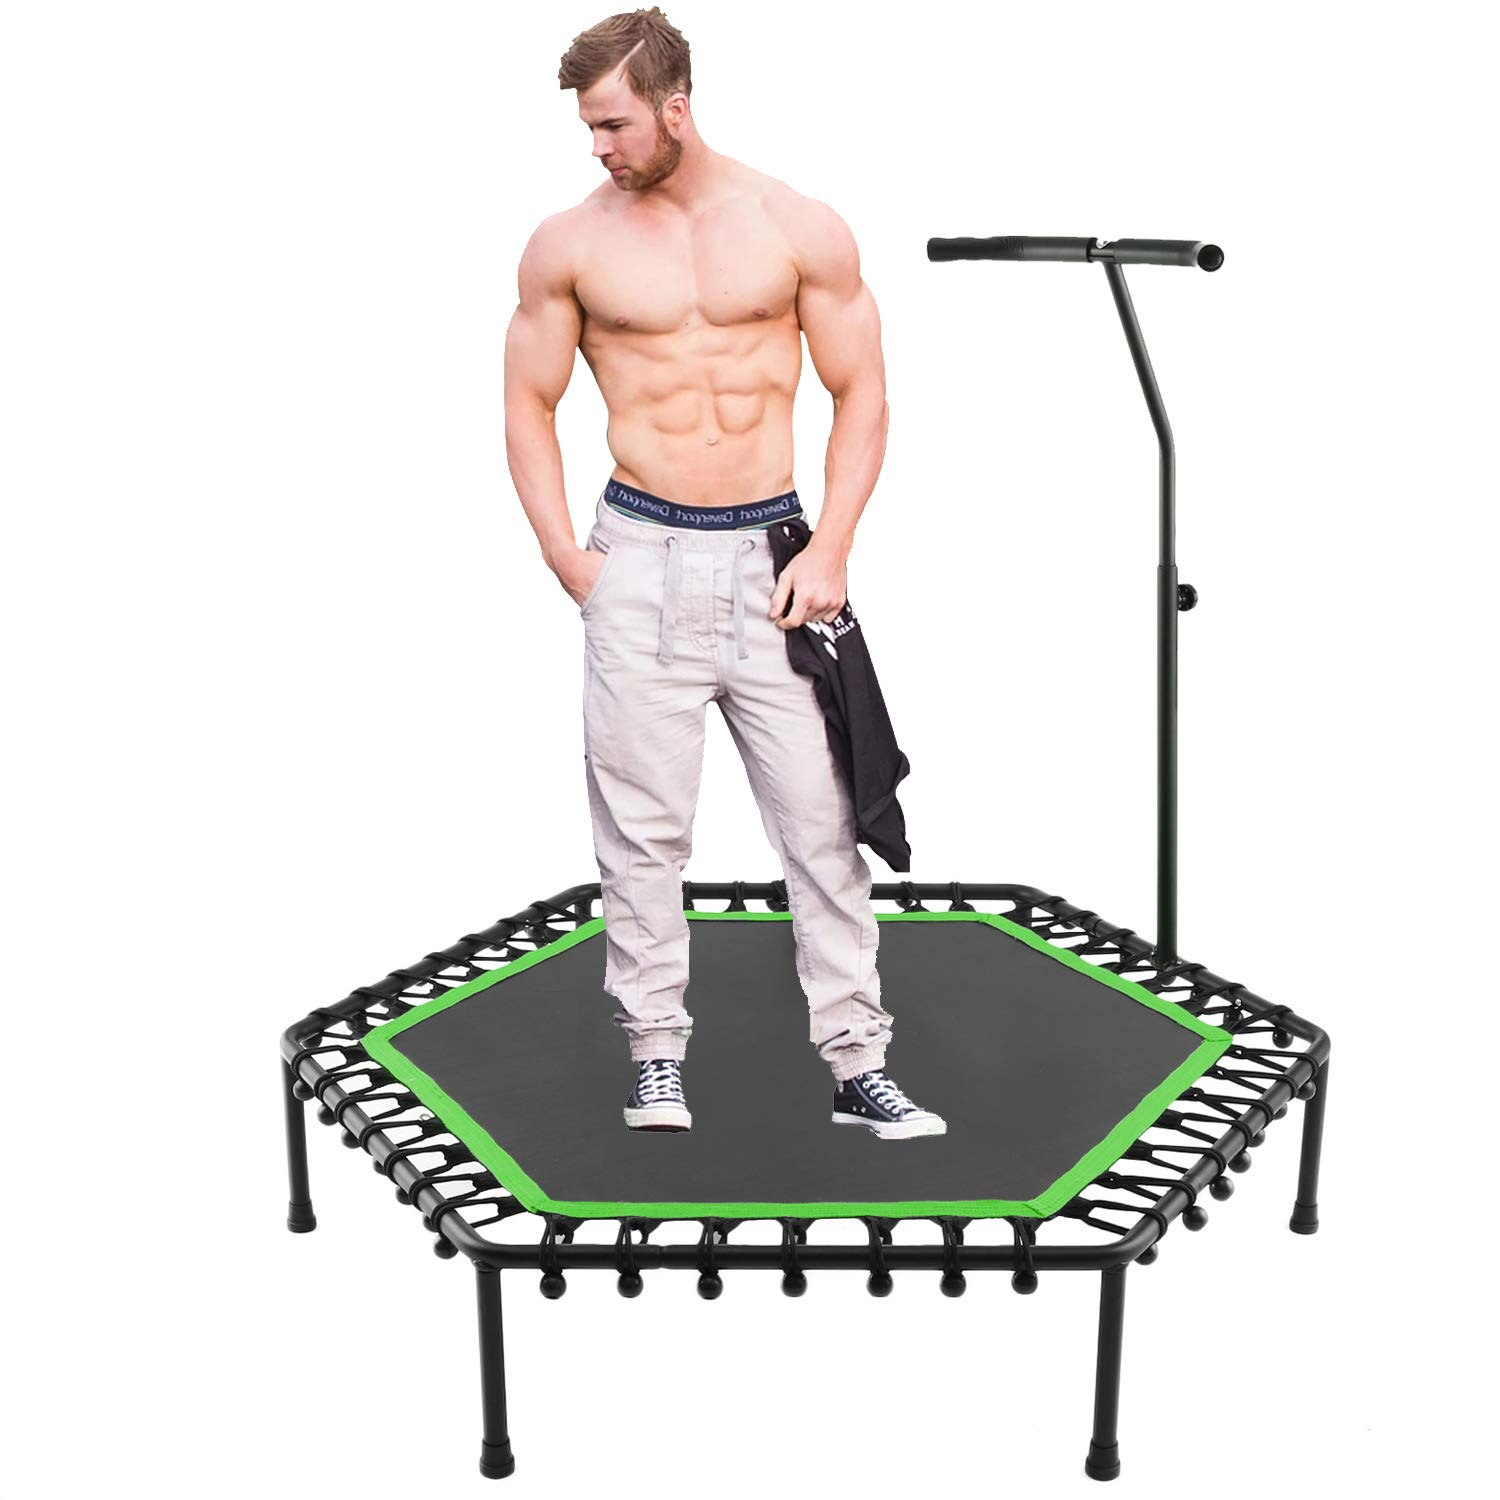 50'' Silent Rebounders Mini Trampolines Exercise Indoor with Adjustable Handrail for Adults Kids Max 220 lbs by shaofu